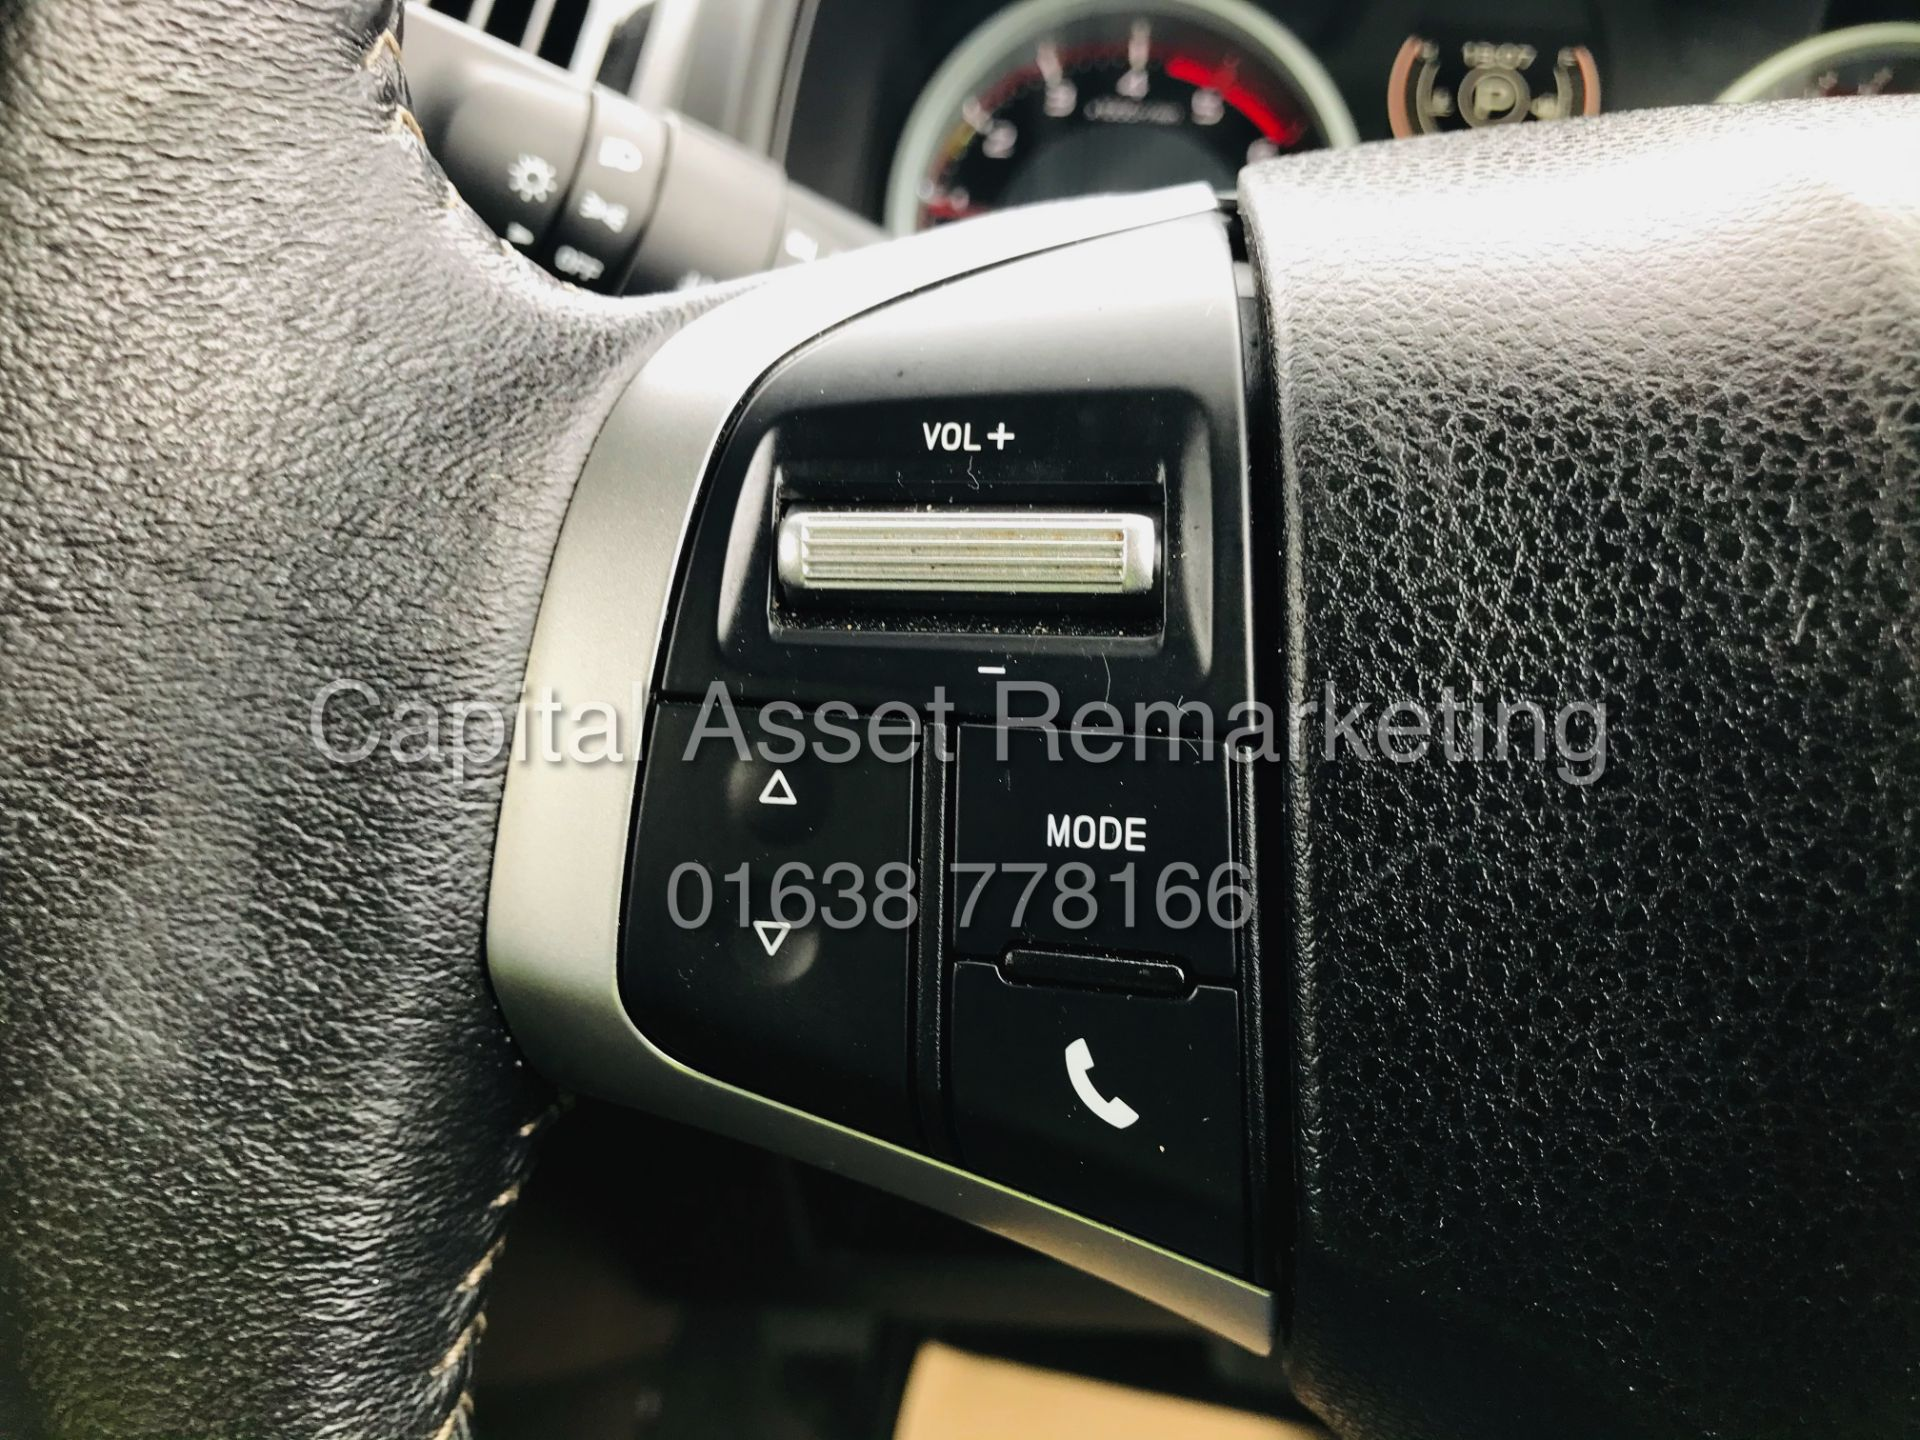 "(On Sale) ISUZU D-MAX ""BLADE"" AUTO - 1 OWNER (2019 - EURO 6) LEATHER - SAT NAV *TOP SPEC* - Image 31 of 34"